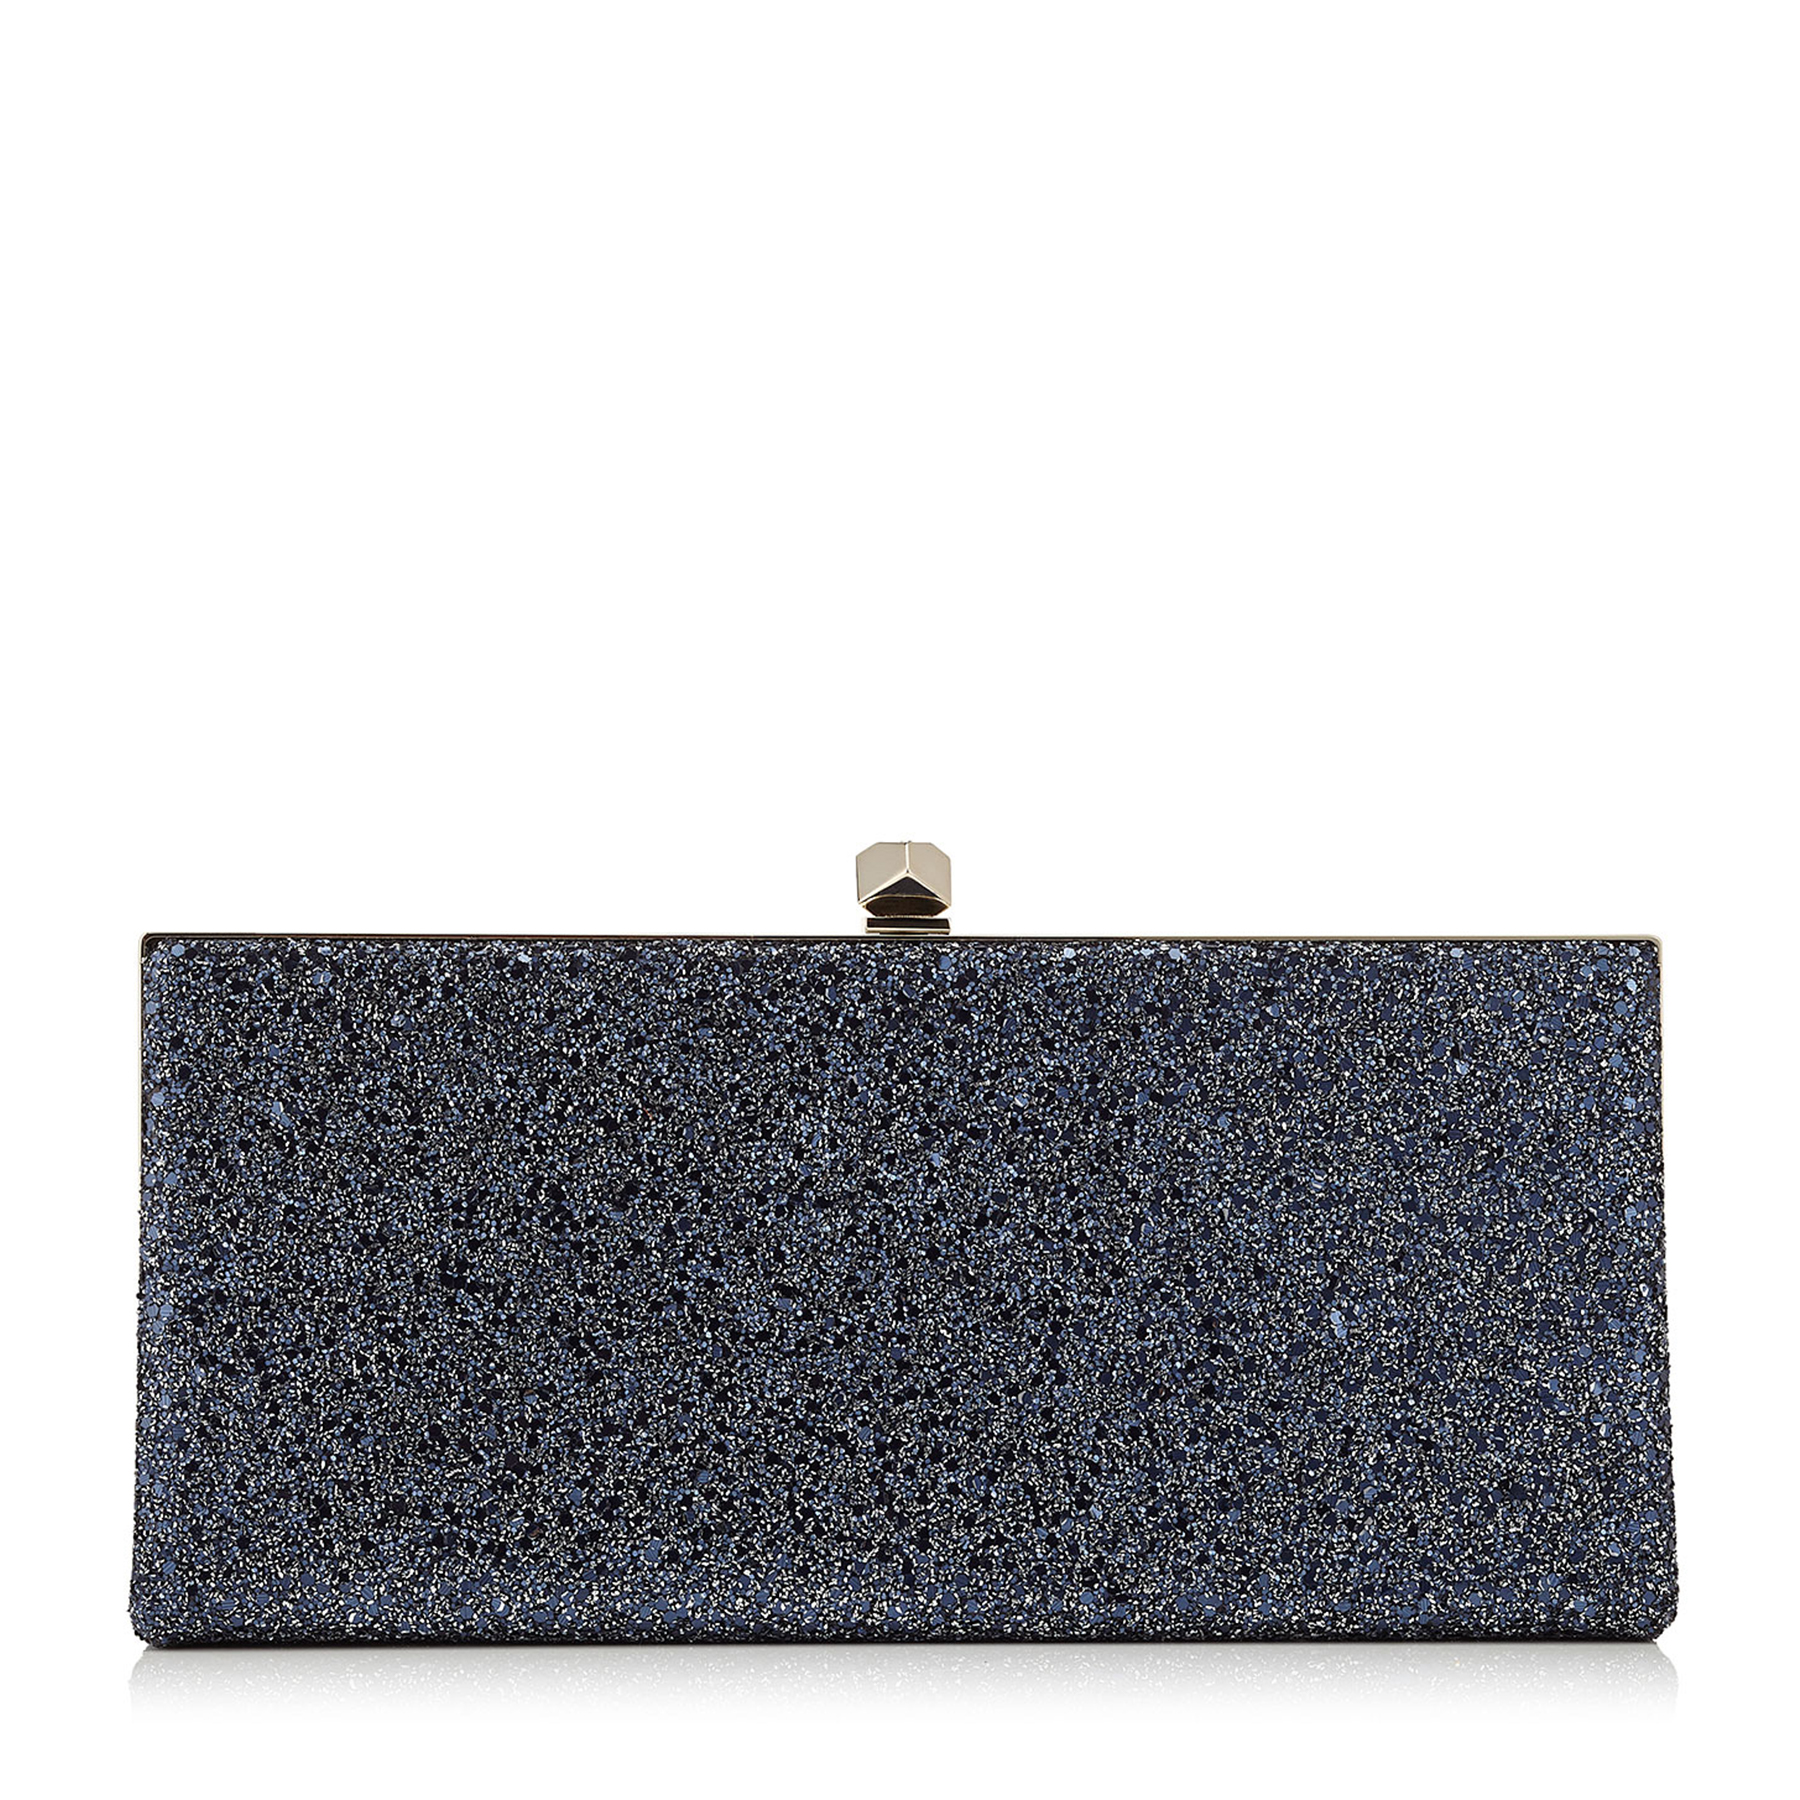 CELESTE Navy Crackly Glitter Fabric Clutch Bag with Cube Clasp